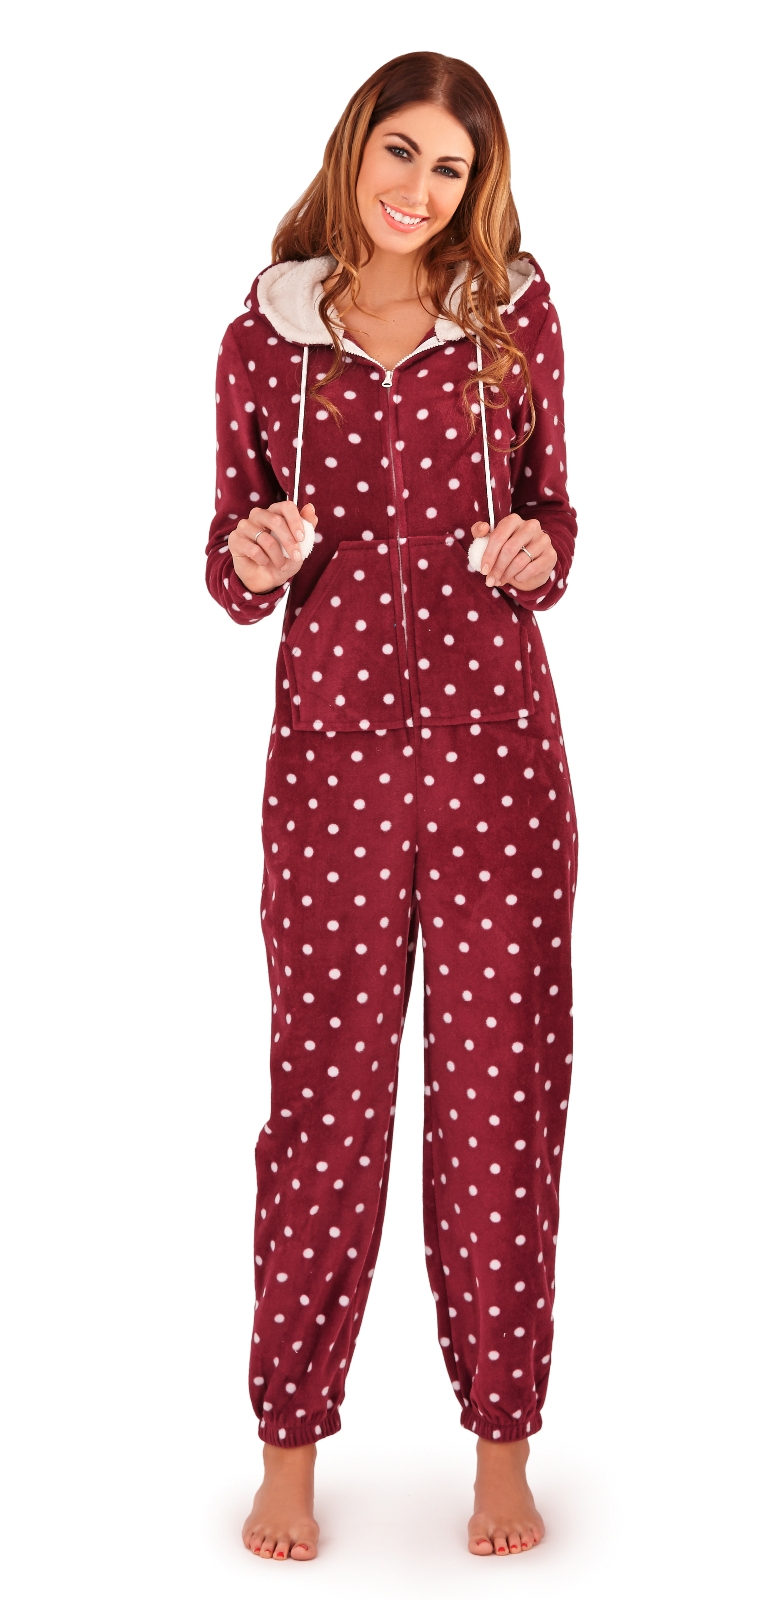 Staying in bed? That's the perfect time to wear our high quality Womens Rights Women's Pyjamas. Shop our extensive collection of comfy Womens Rights Women's Pyjamas in a wide variety of styles that allow you to wear your passion around the house.